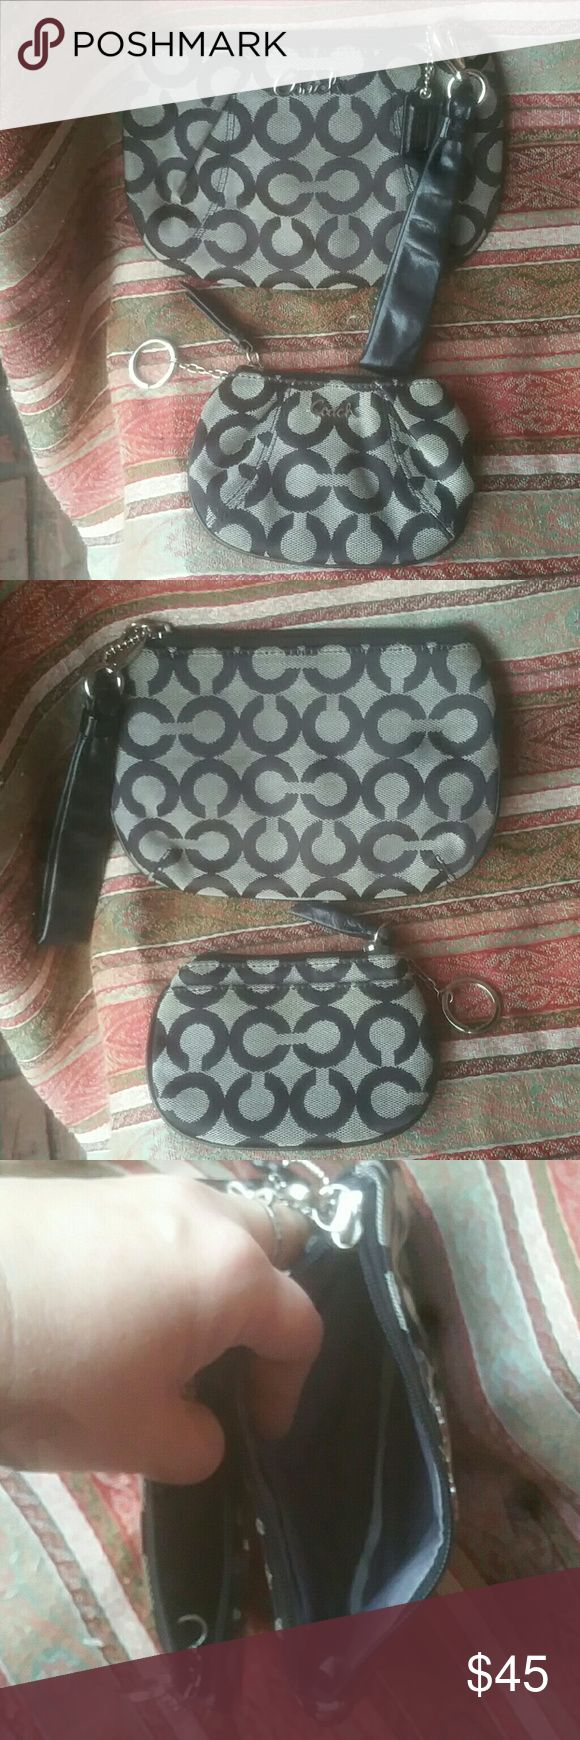 Coach Wristlet Set Large Wristlet Key chain Coin Coach Wristlet Set Large Wristlet Key chain Coin Purse  Goid used condition, has signs of use on outside  Great pair for your bag! Coach Bags Clutches & Wristlets